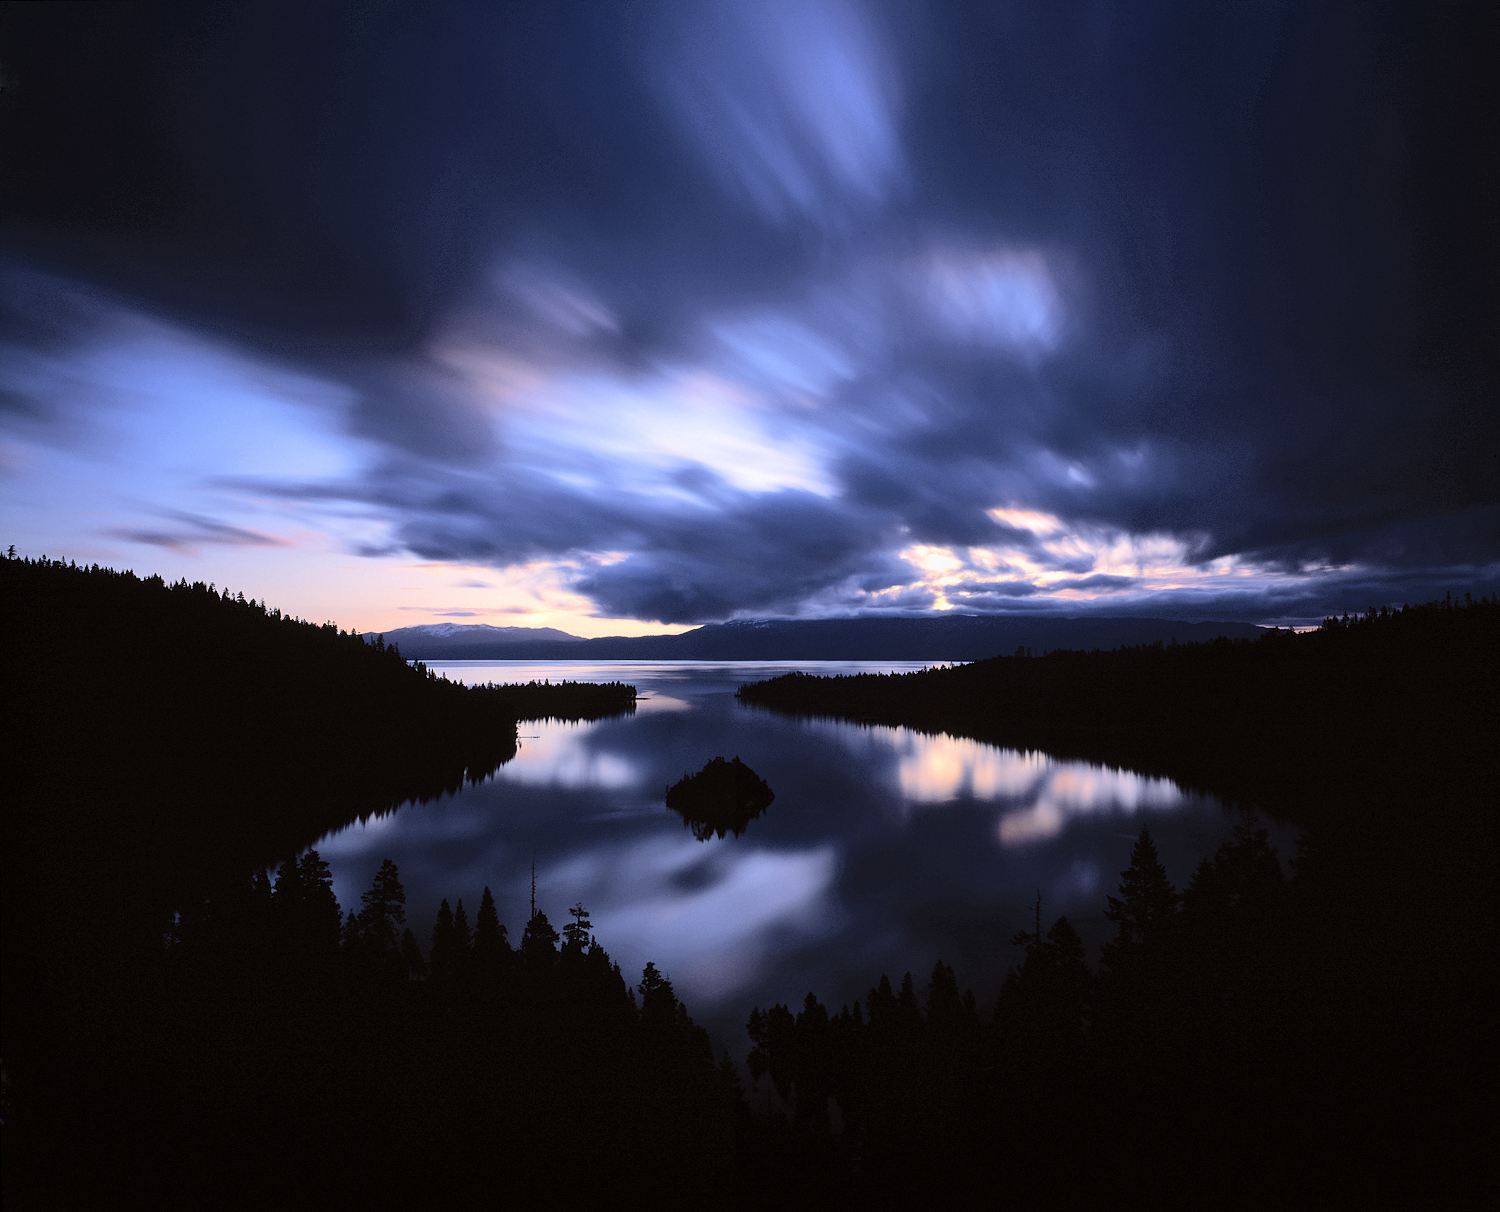 Mystic Sunrise, Emerald Bay, Lake Tahoe